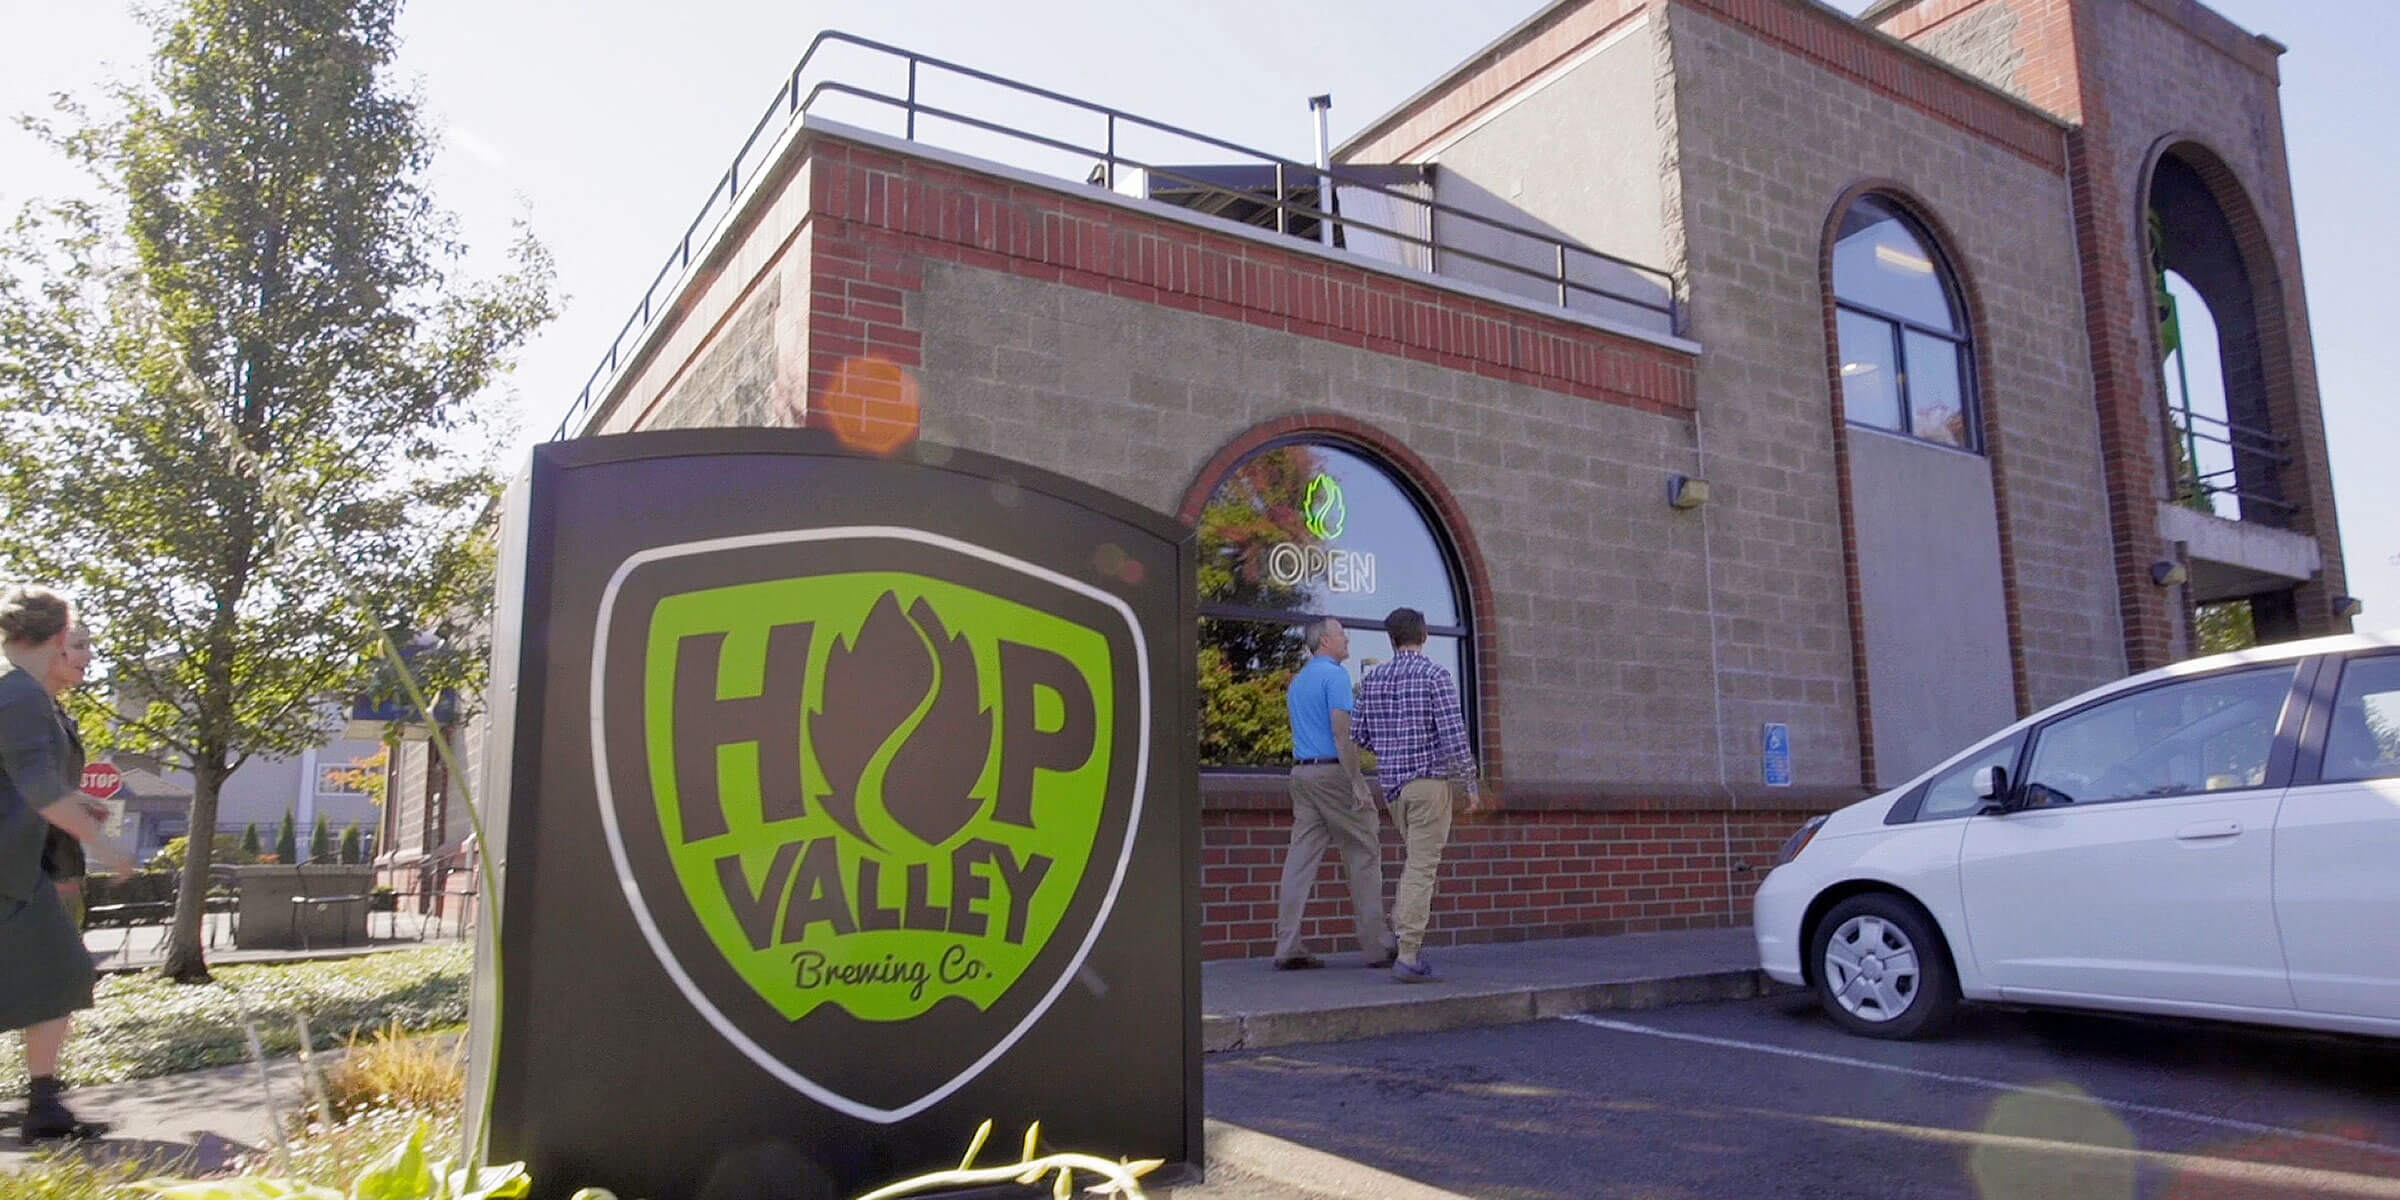 Outside the entrance to the Hop Valley Brewing Company in Springfield, Oregon